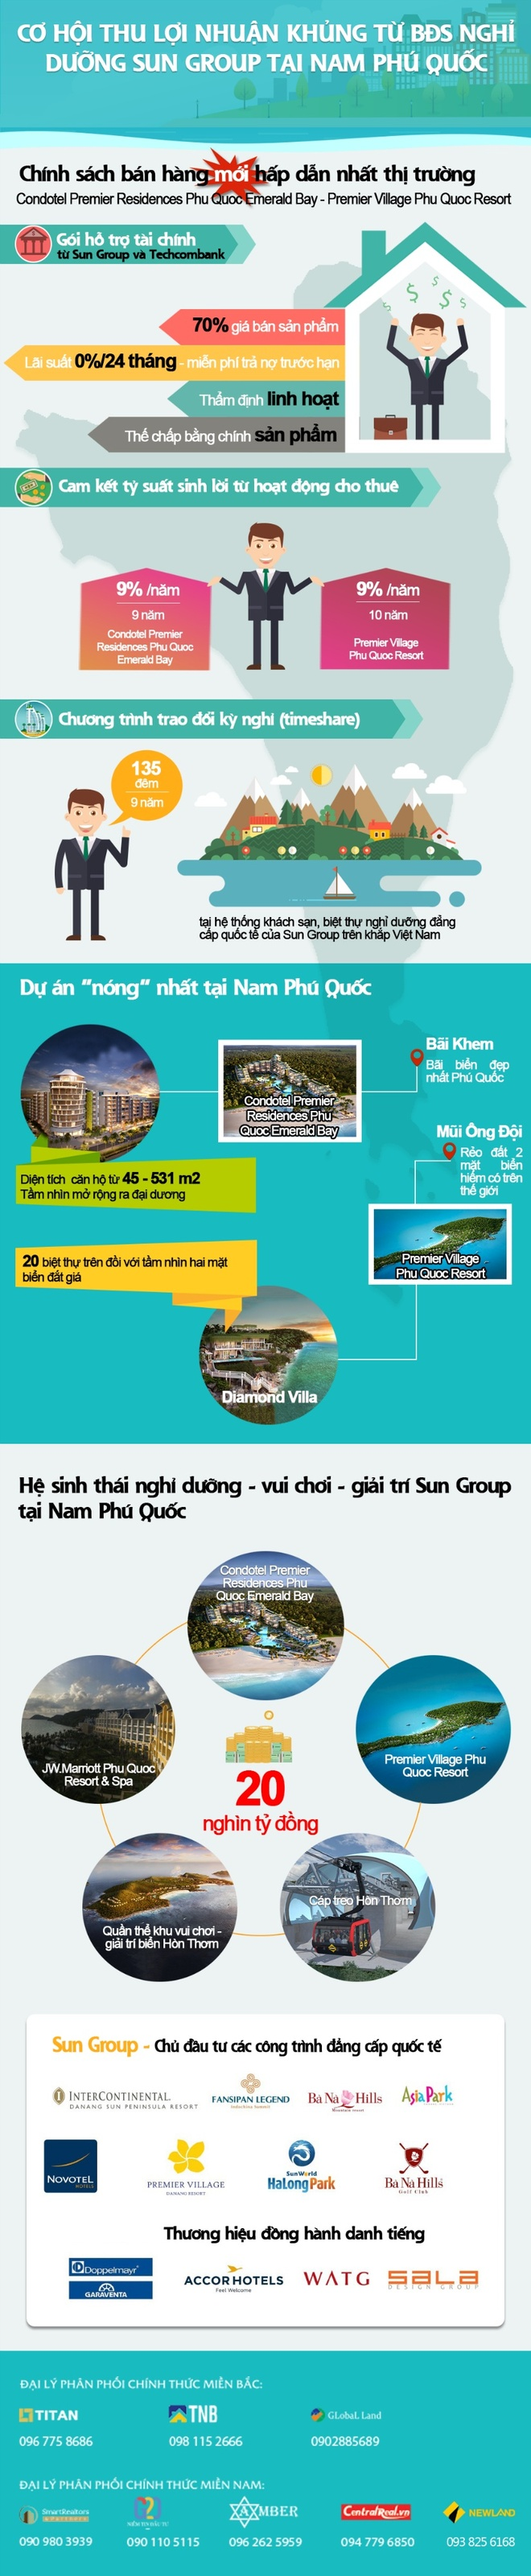 Sun Group anh 1